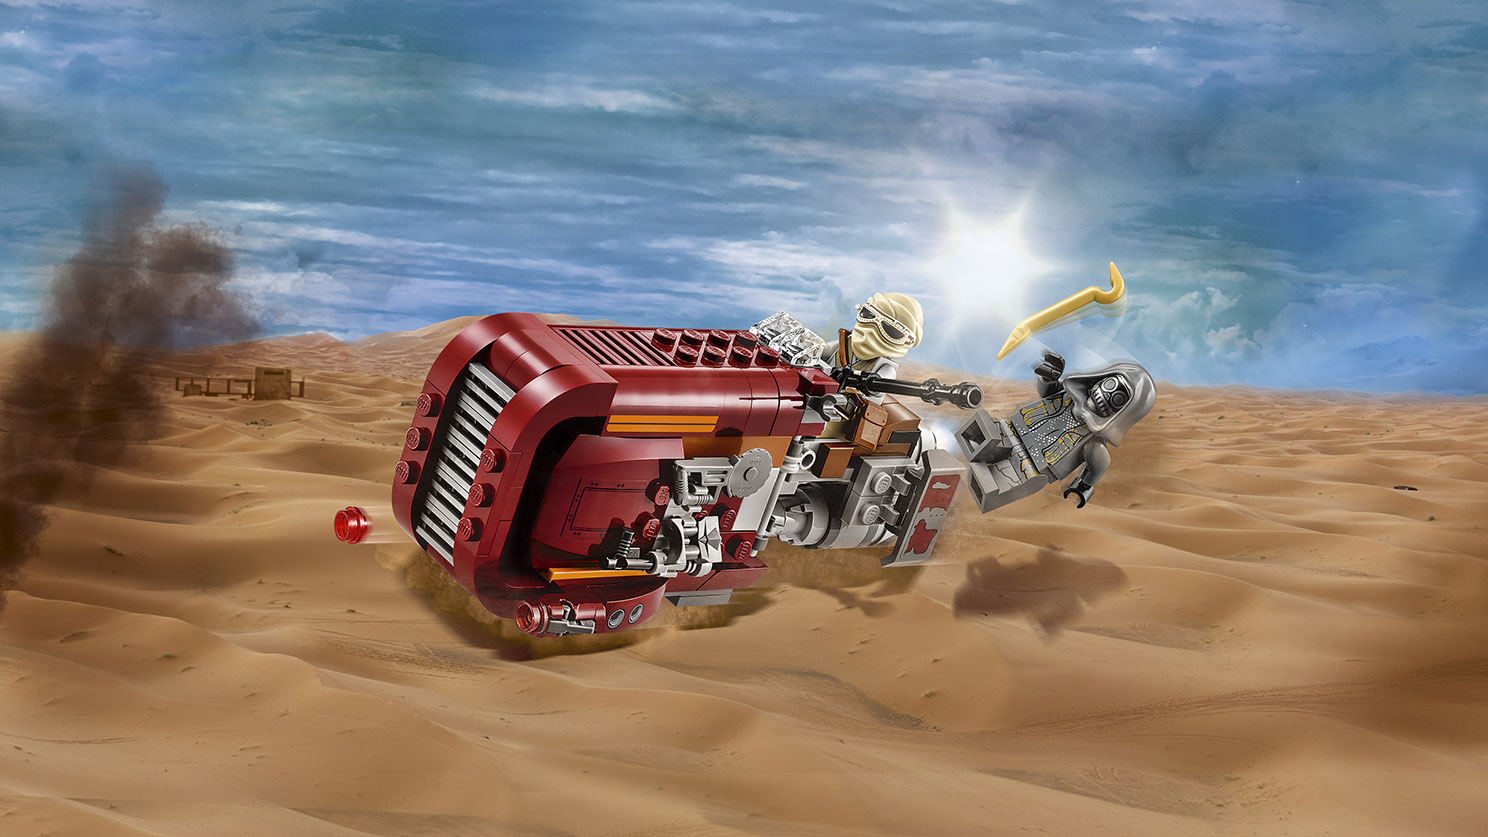 Star Wars Rey Speeder building set by Lego